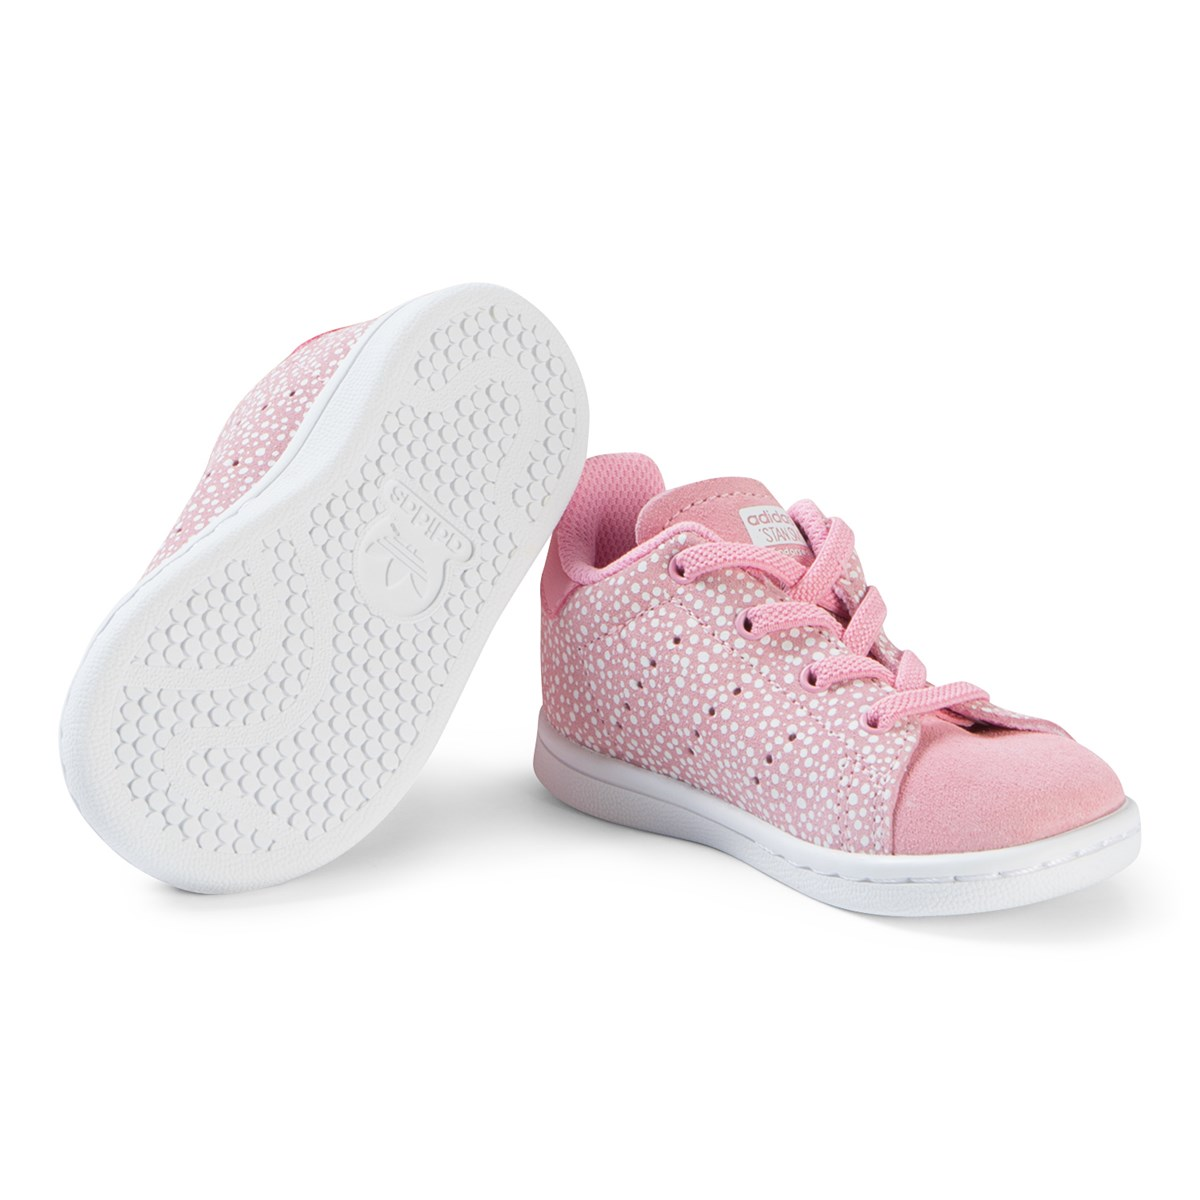 5bb55794b91c63 adidas Originals - Pink and White Stan Smith Sneakers - Babyshop.com